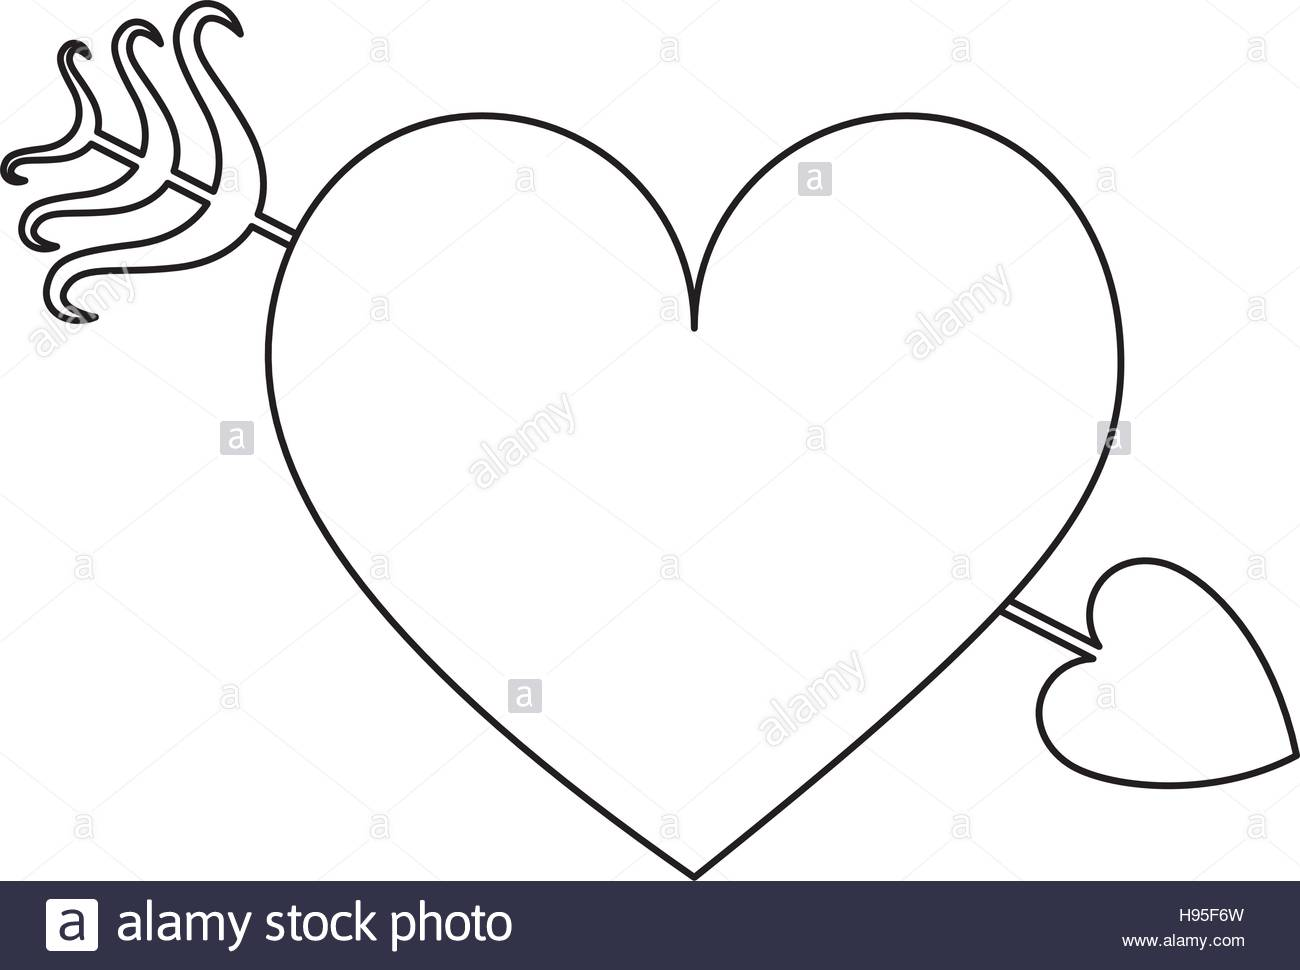 1300x970 Heart Cartoon With Arrow Icon Image Vector Illustration Design